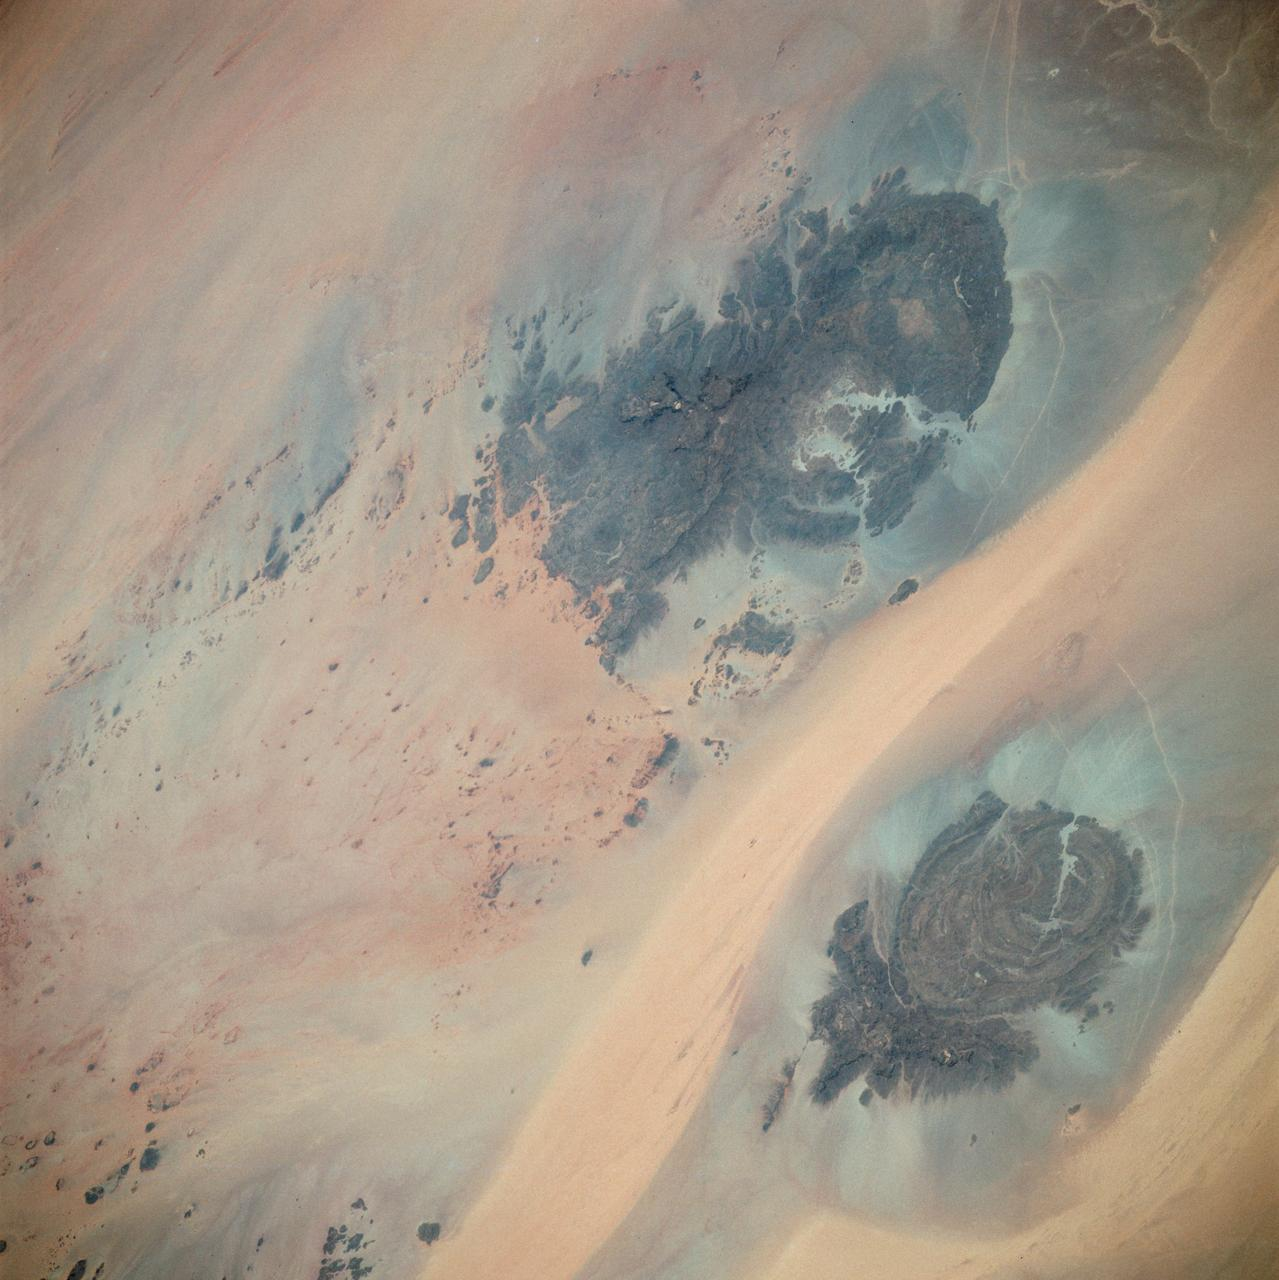 AST-02-130 (20 July 1975) --- An oblique view of a portion of Libya and the Arab Republic of Egypt, as photographed from the Apollo spacecraft in Earth orbit during the joint U.S.-USSR Apollo-Soyuz Test Project mission. The geological features are the Jebel Uweinat and Jebel Arkenu basaltic mountains in the Libyan sand sea. This picture was taken with a 70mm Hasselblad camera using medium-speed Ektachrome QX-807 type film.  The spacecraft was at an altitude of 219 kilometers (136 statute miles).